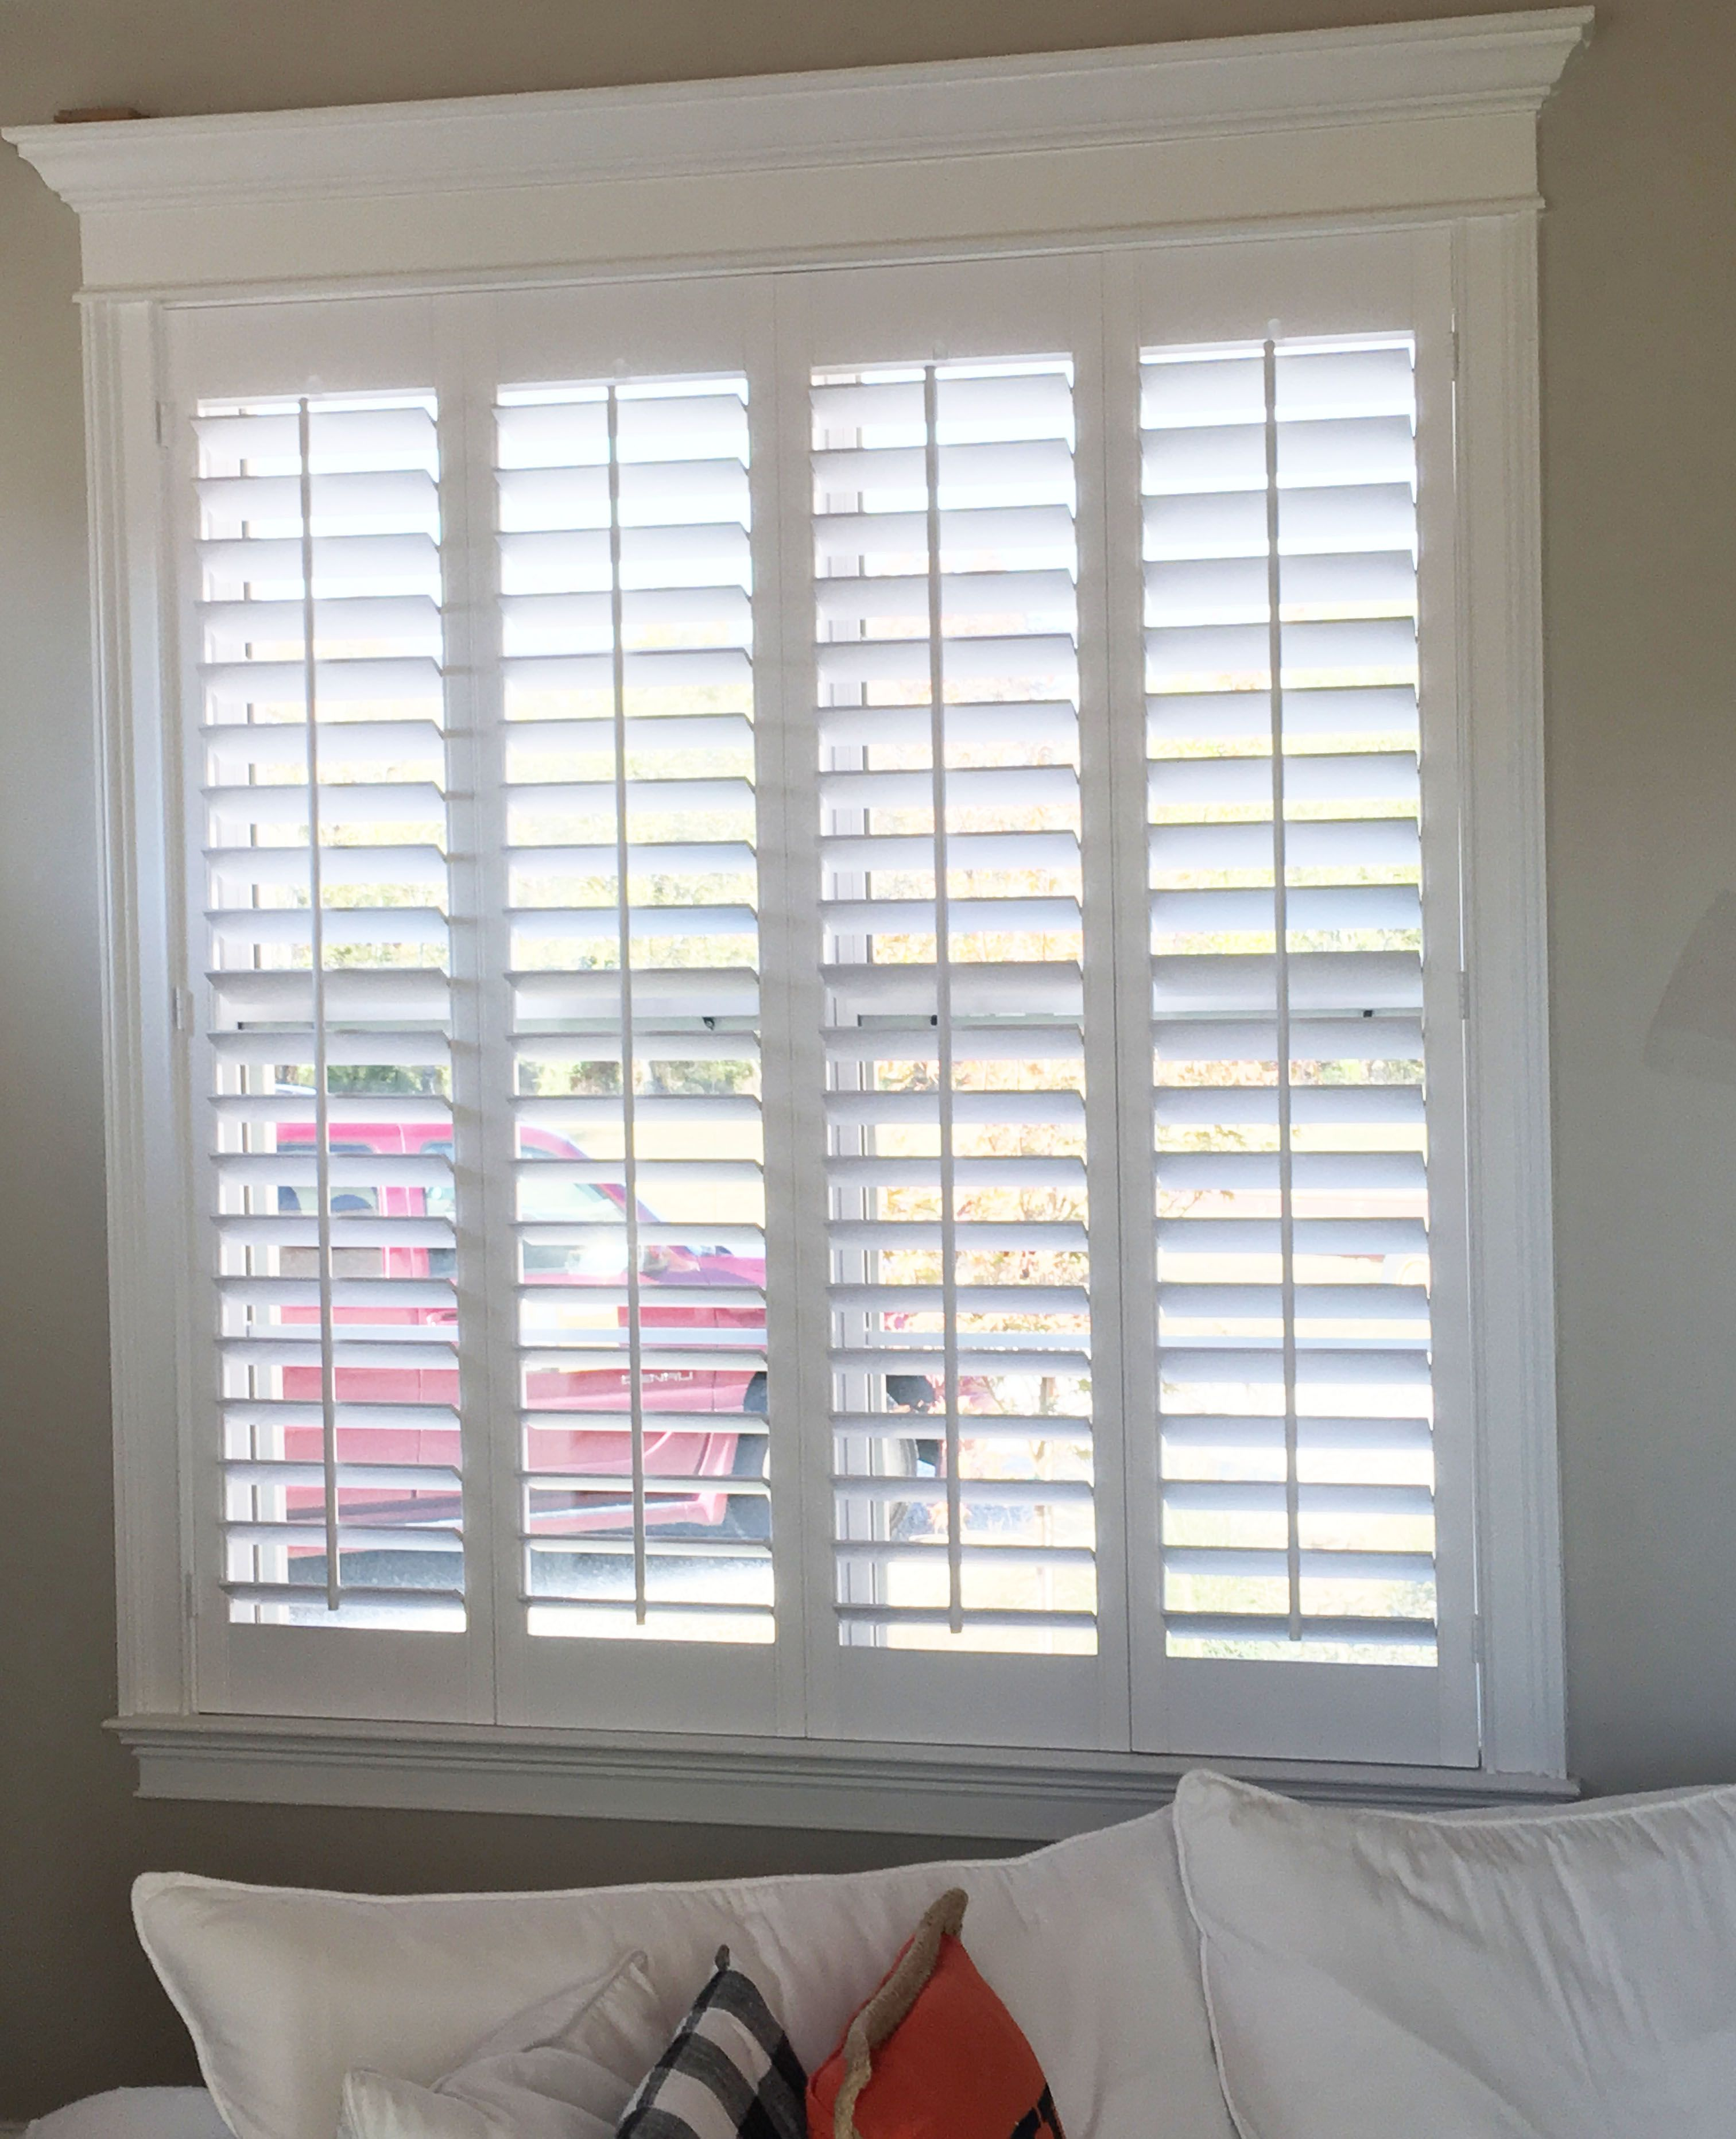 tos plantation shutters how interior blinds california spaces rooms and diy install doors to windows